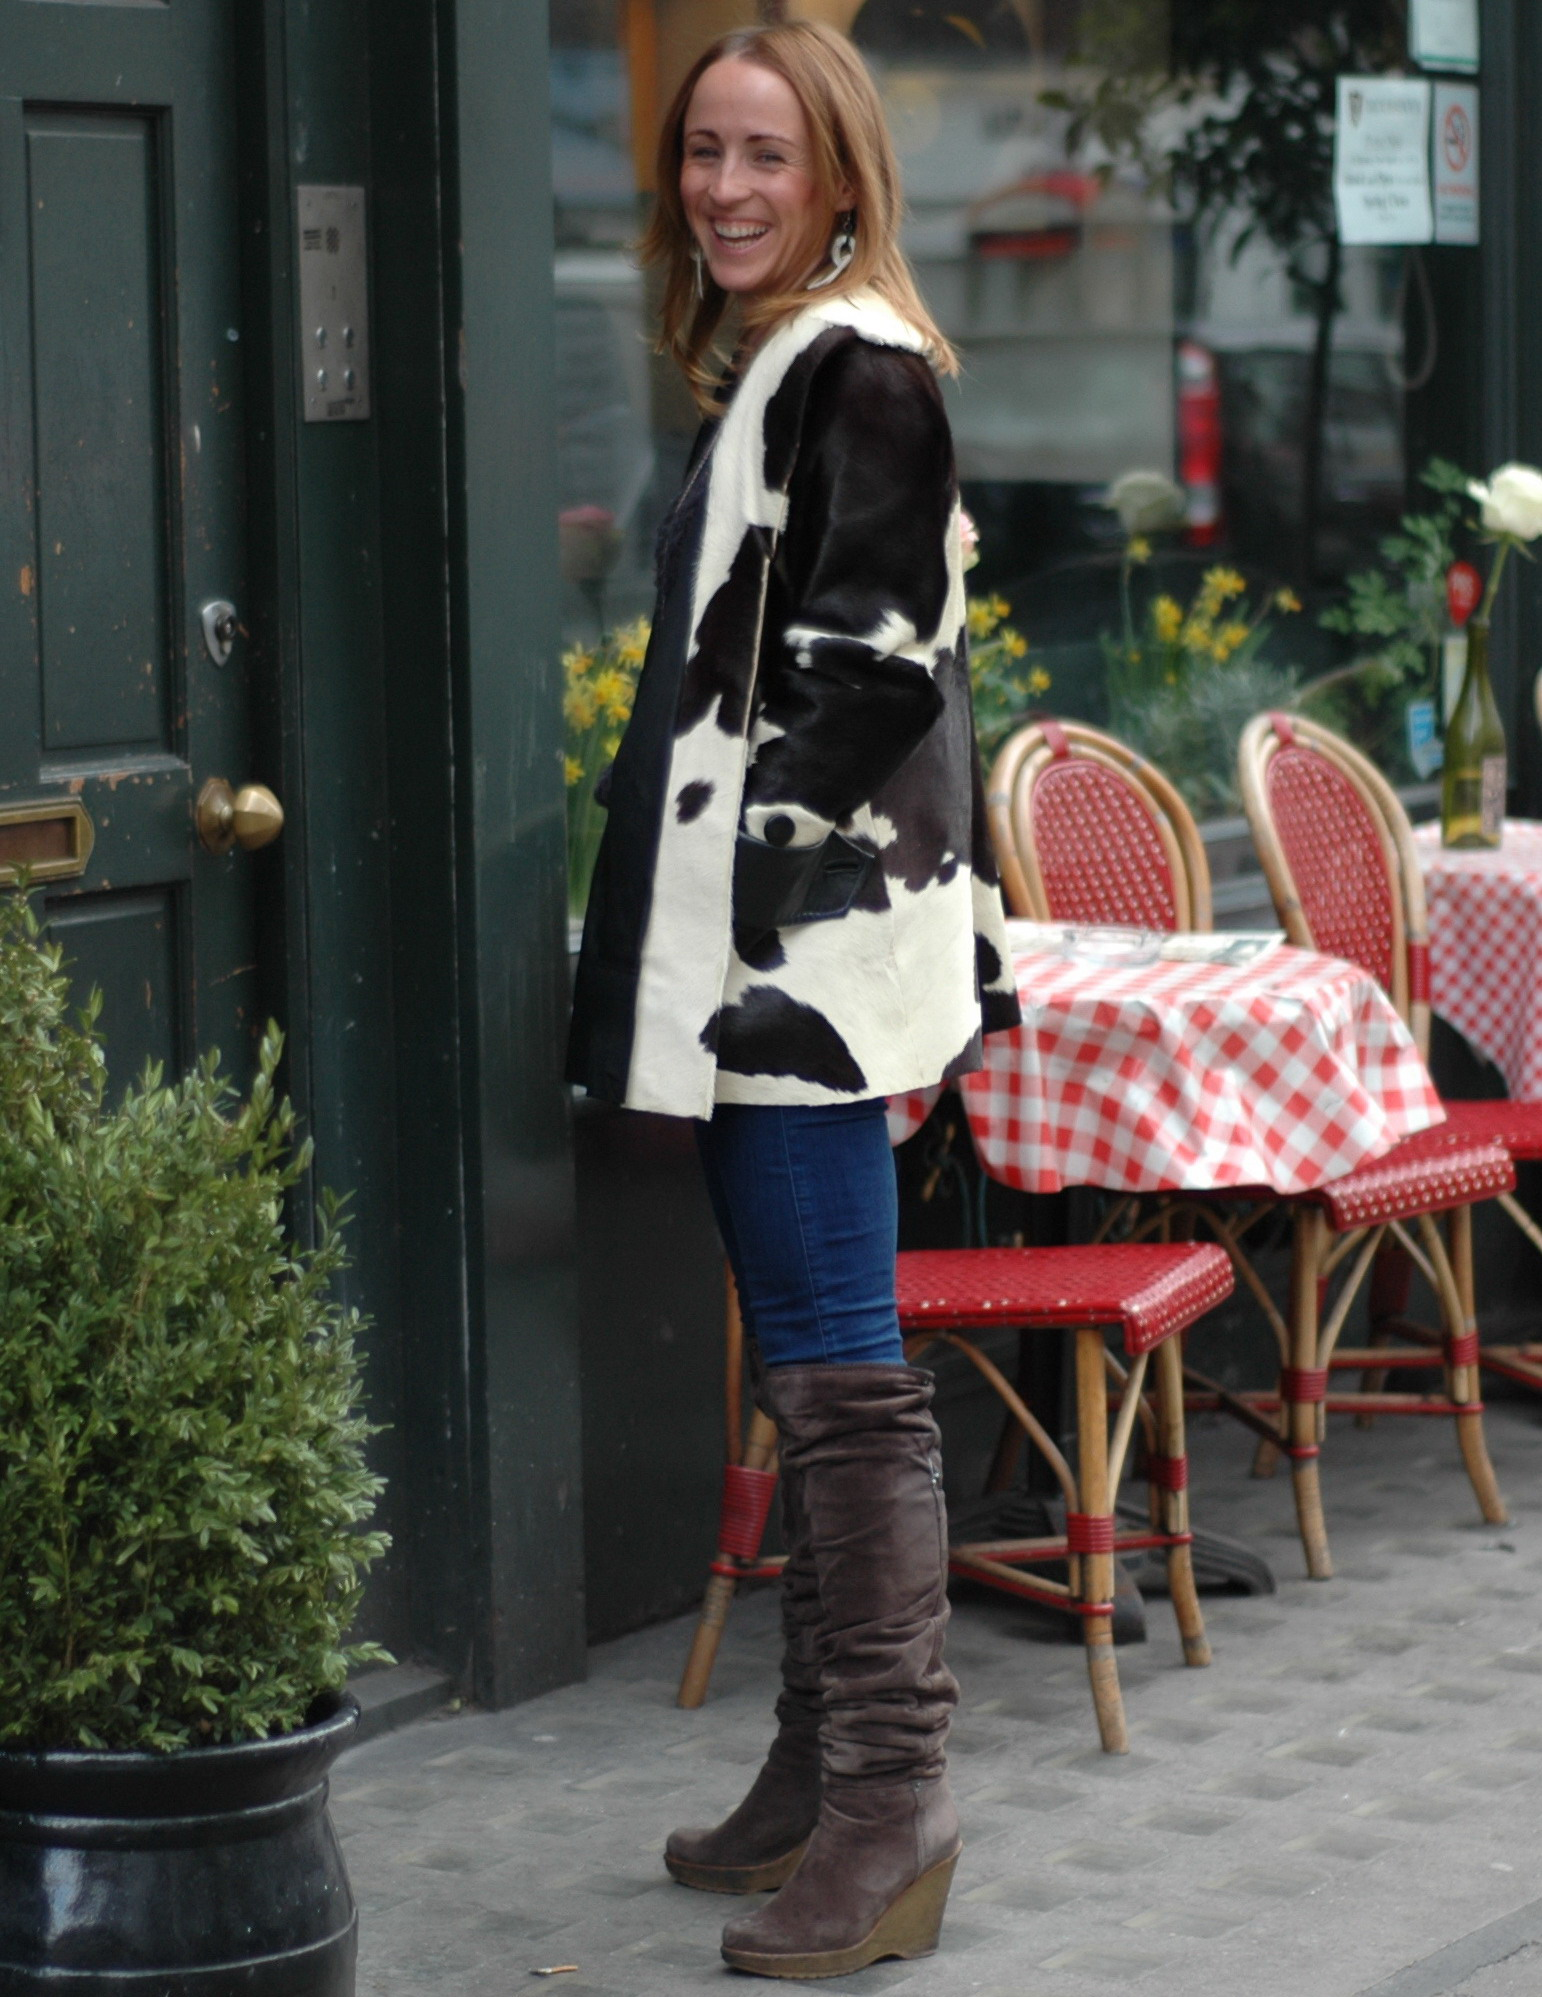 Nikki in her cool cow skin coat